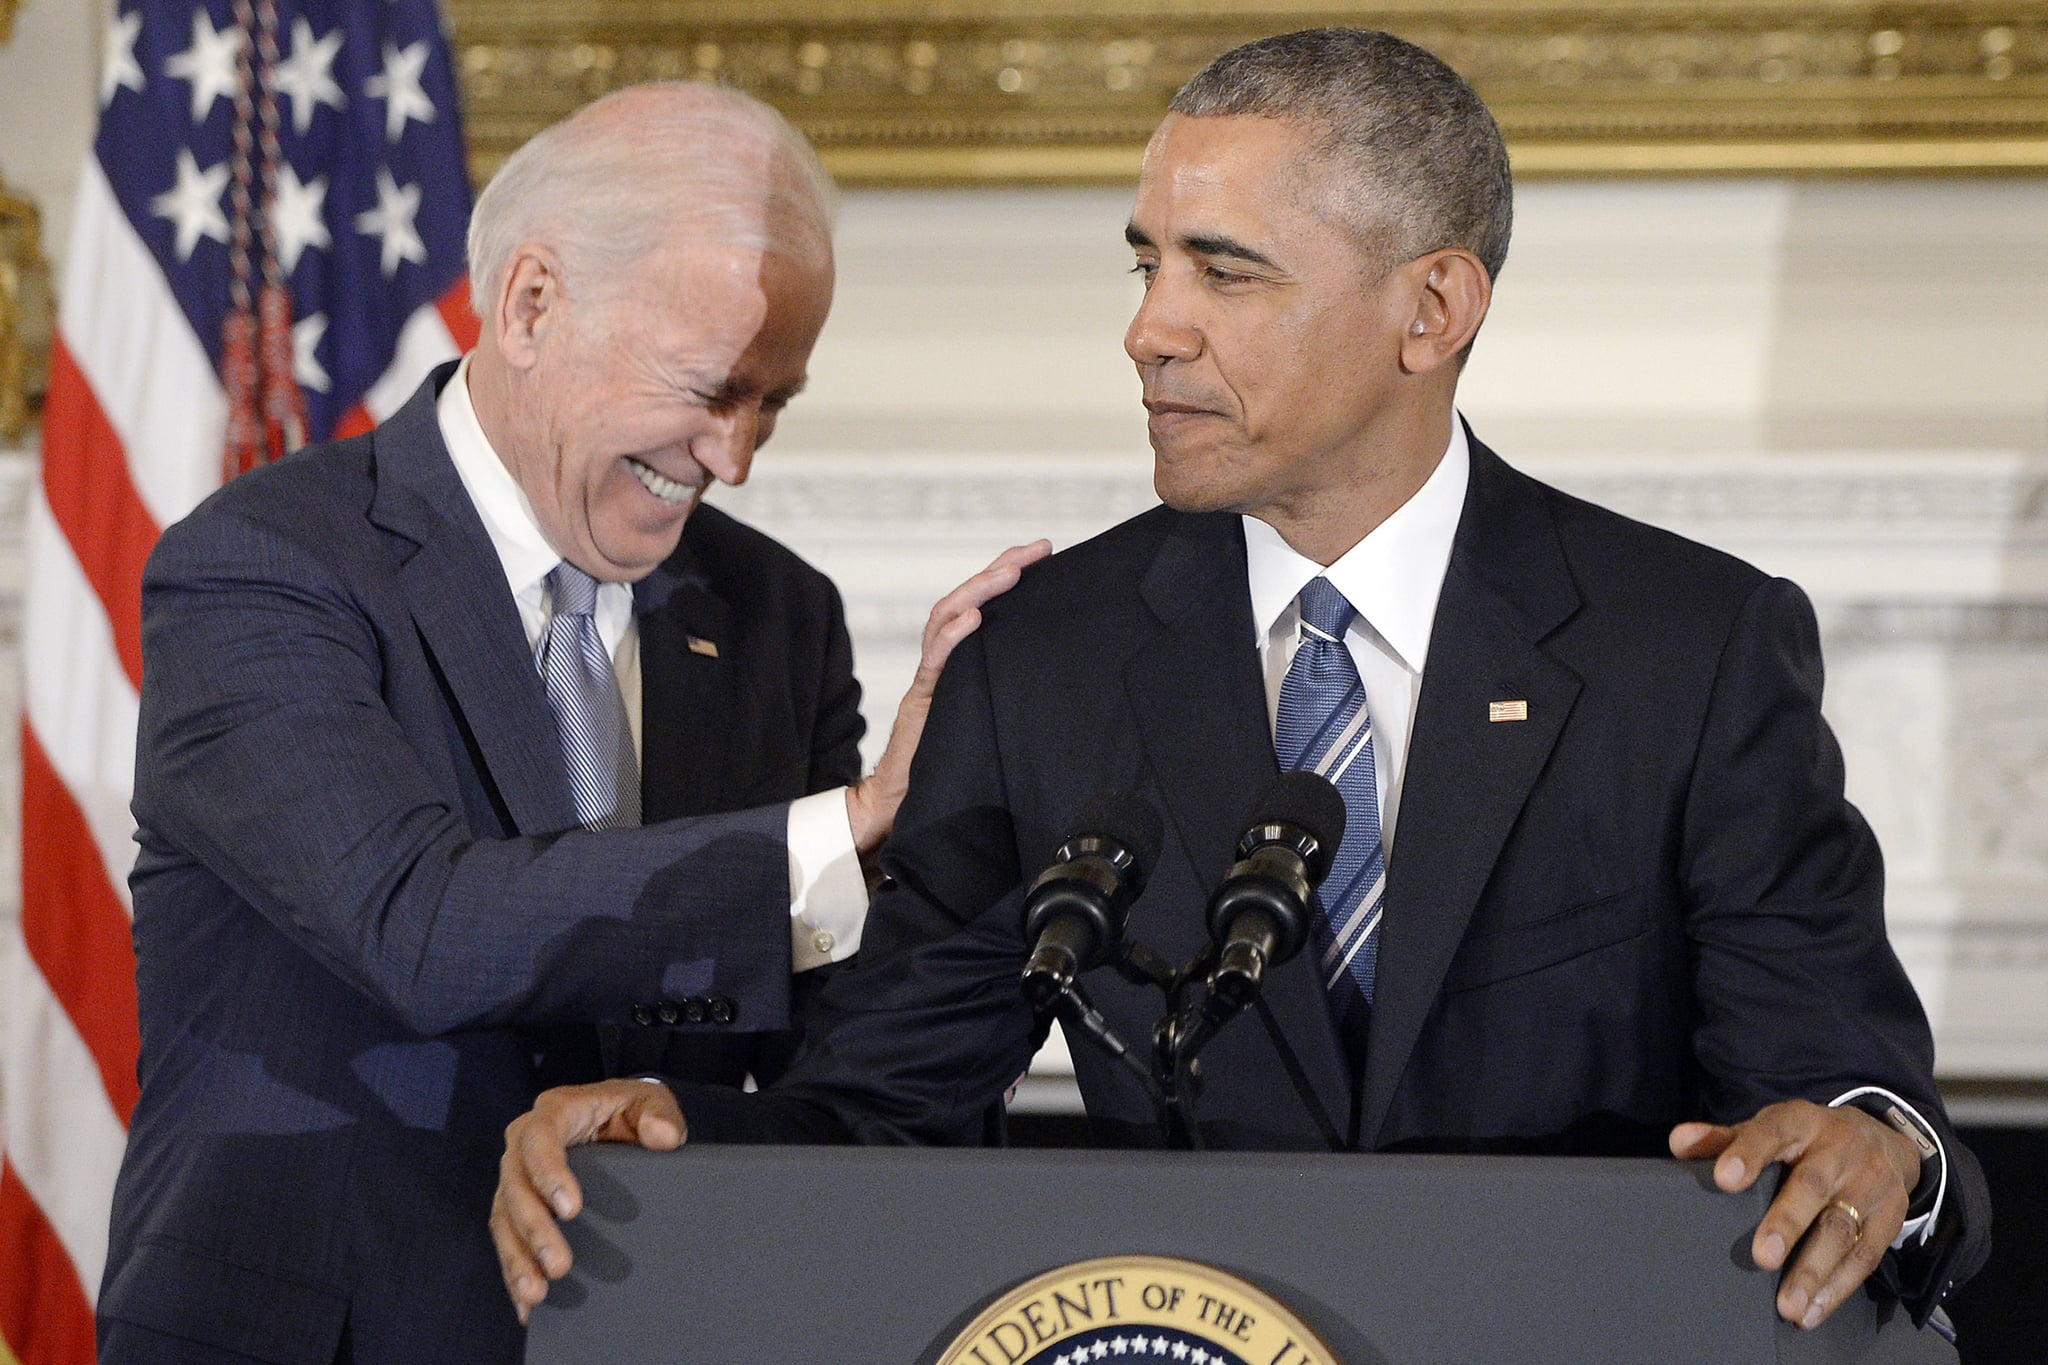 Barack Obama and Joe Biden Friendship PostWhite House POPSUGAR News